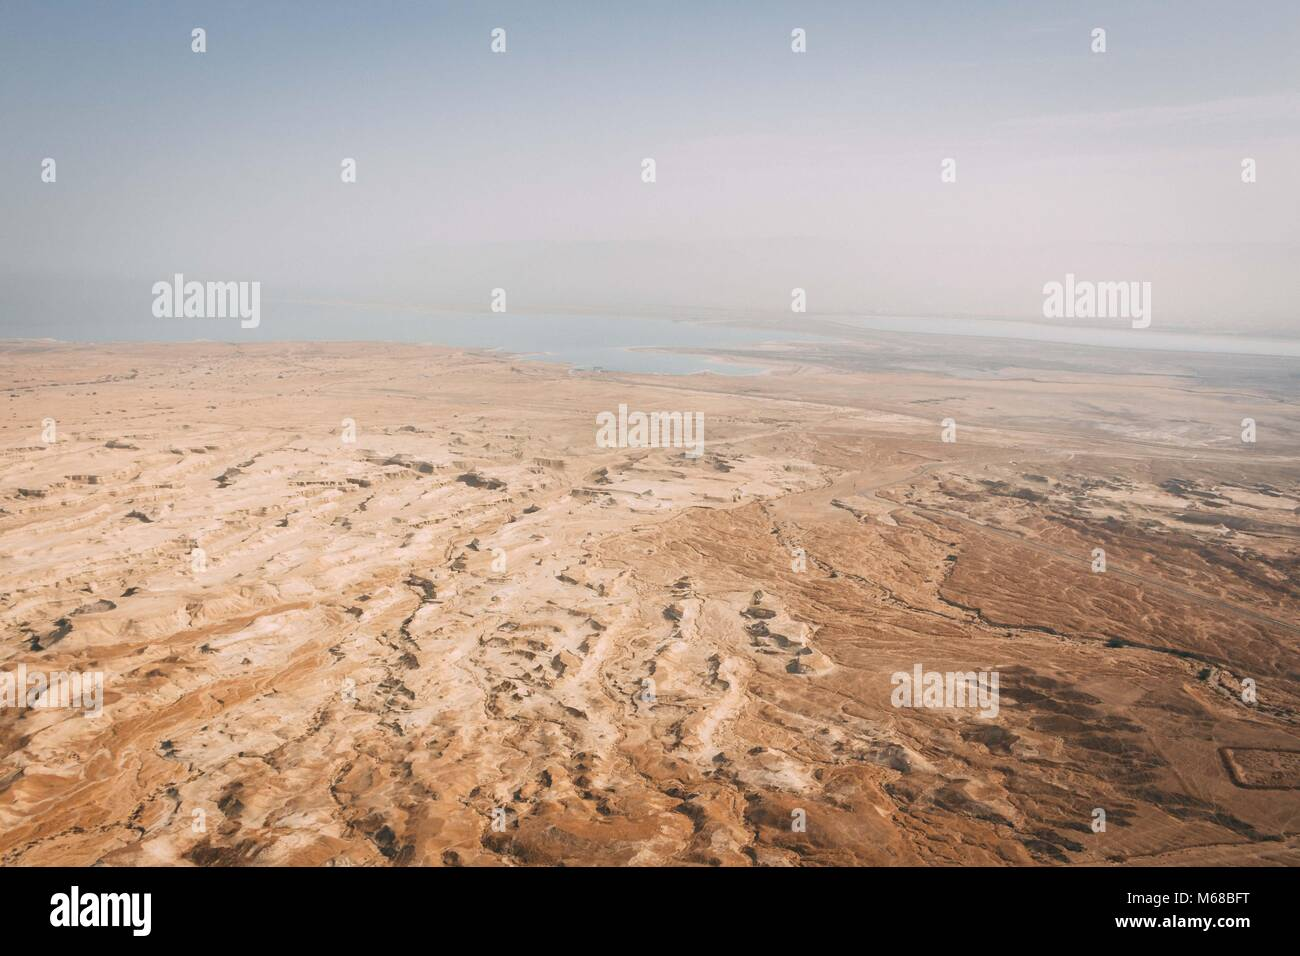 The desert meets the Dead sea - Stock Image